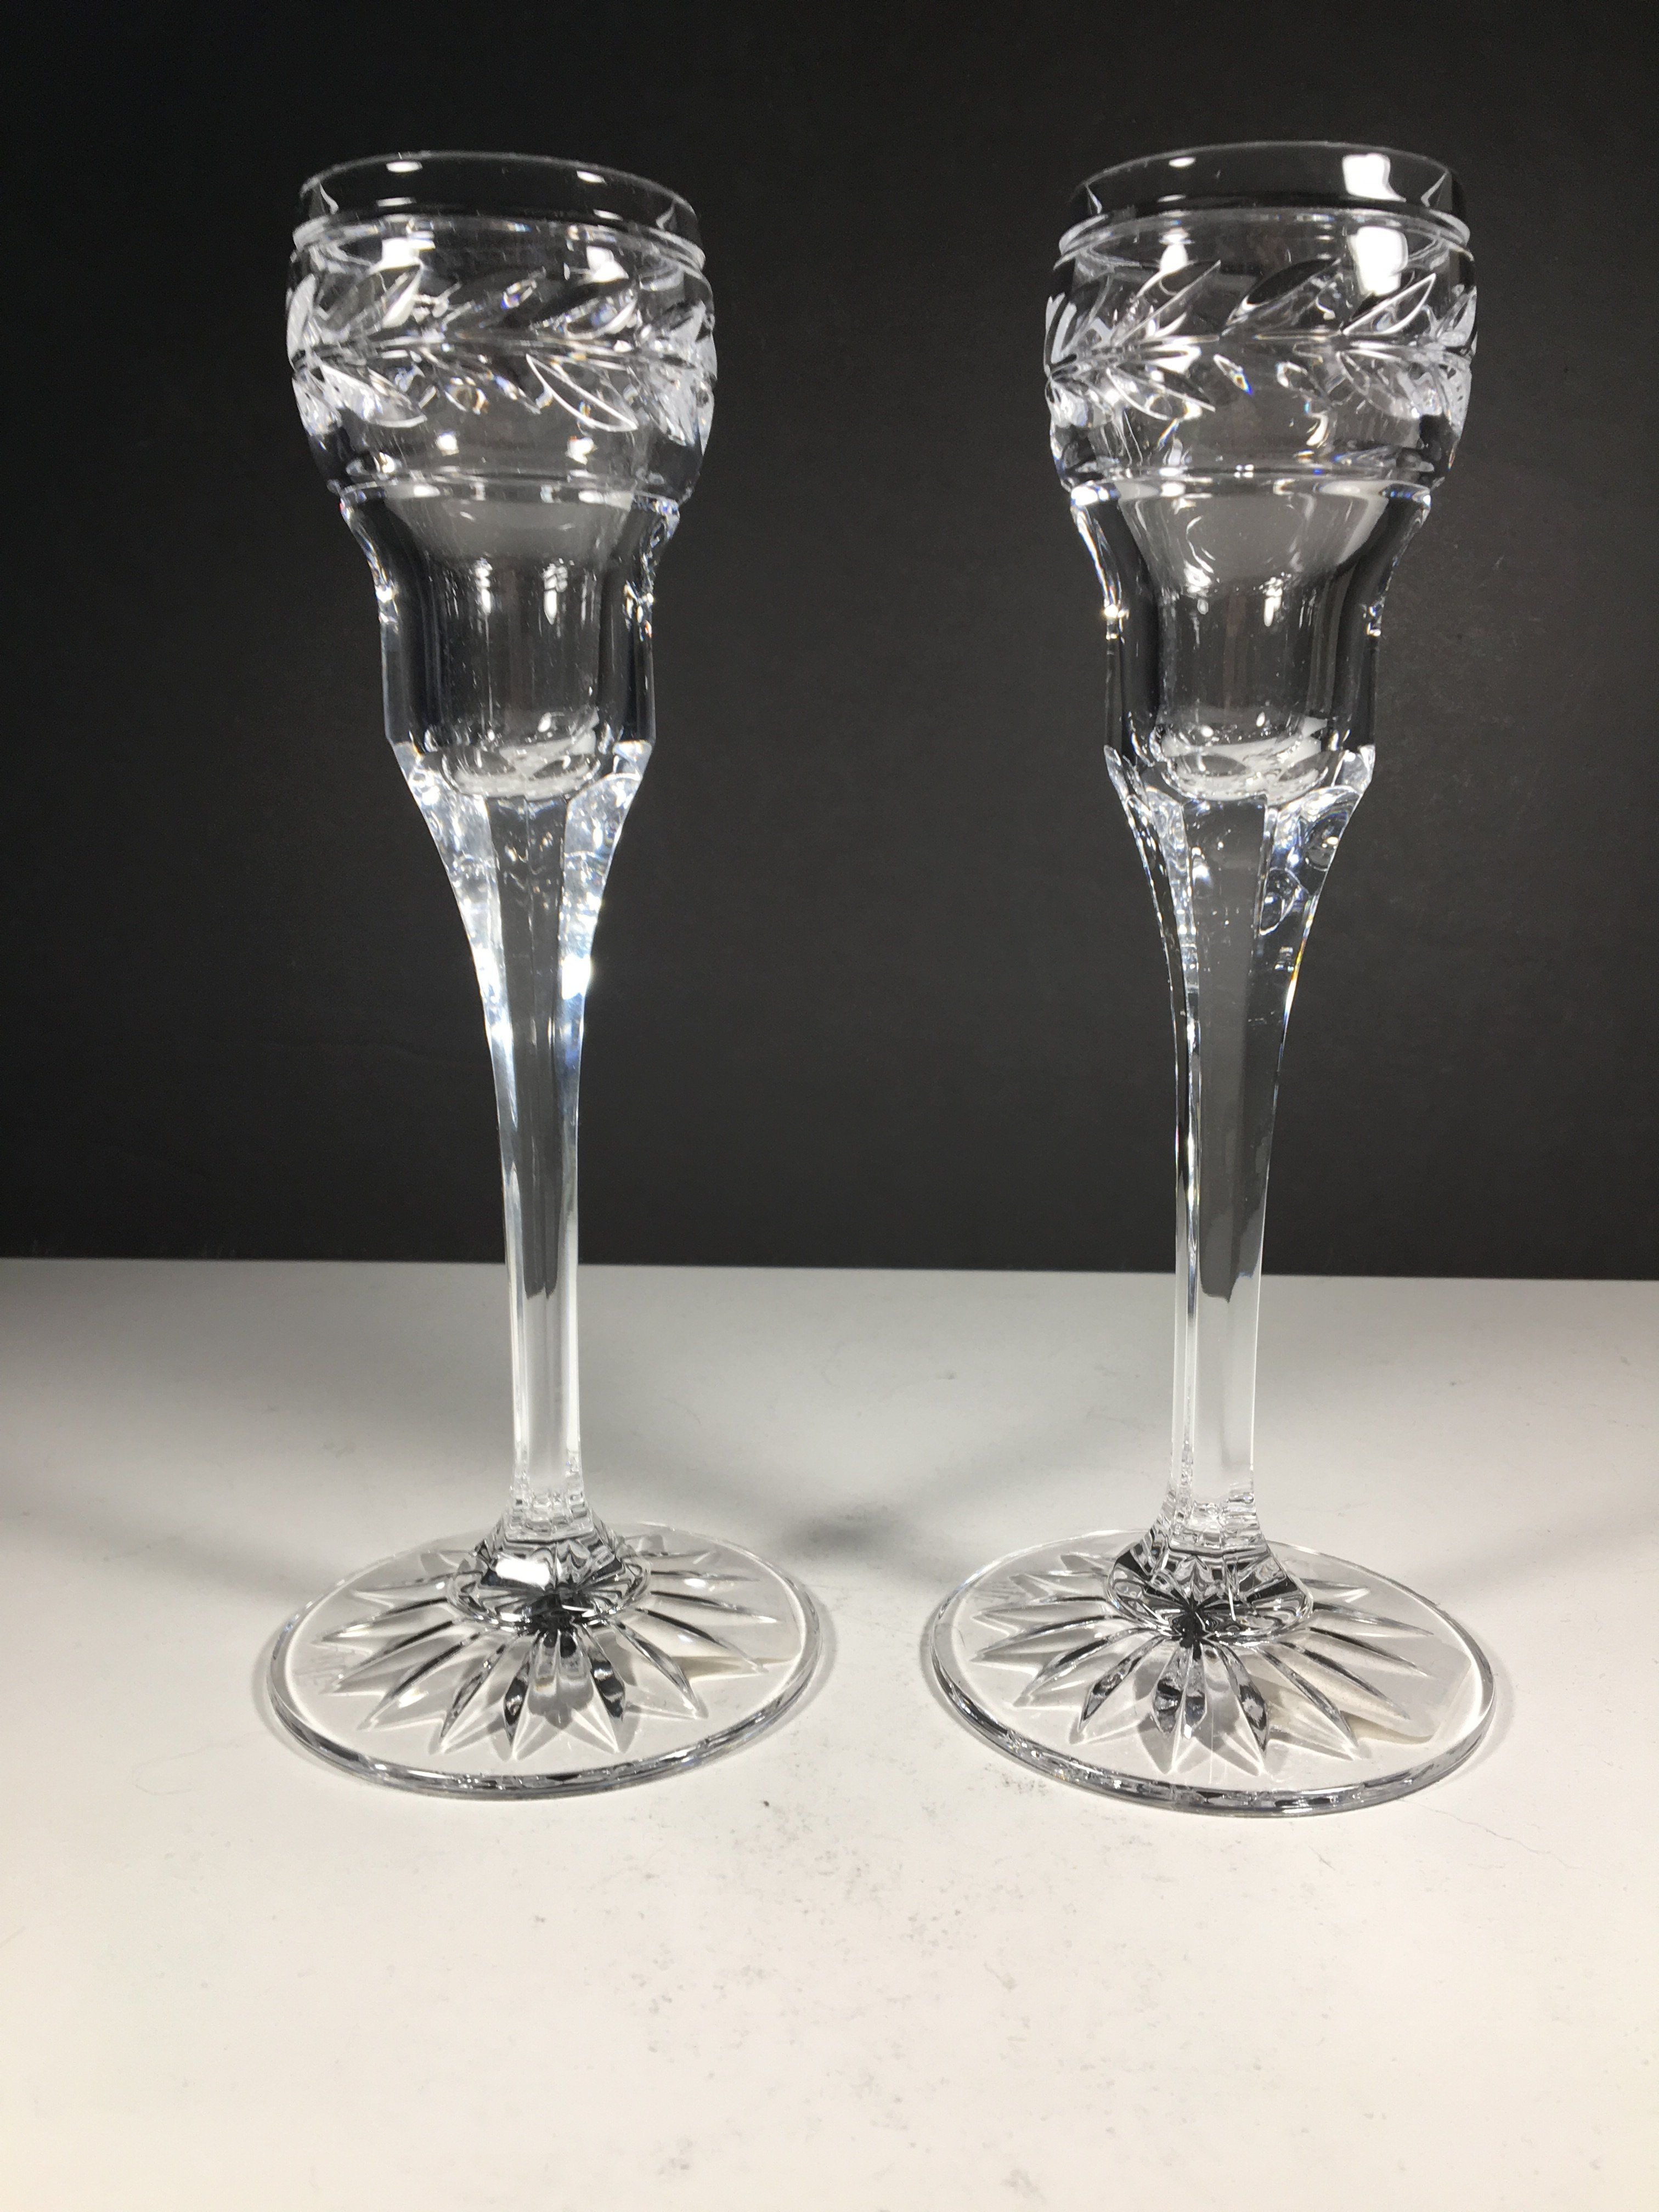 Ralph lauren crystal candlestick holders candlesticks